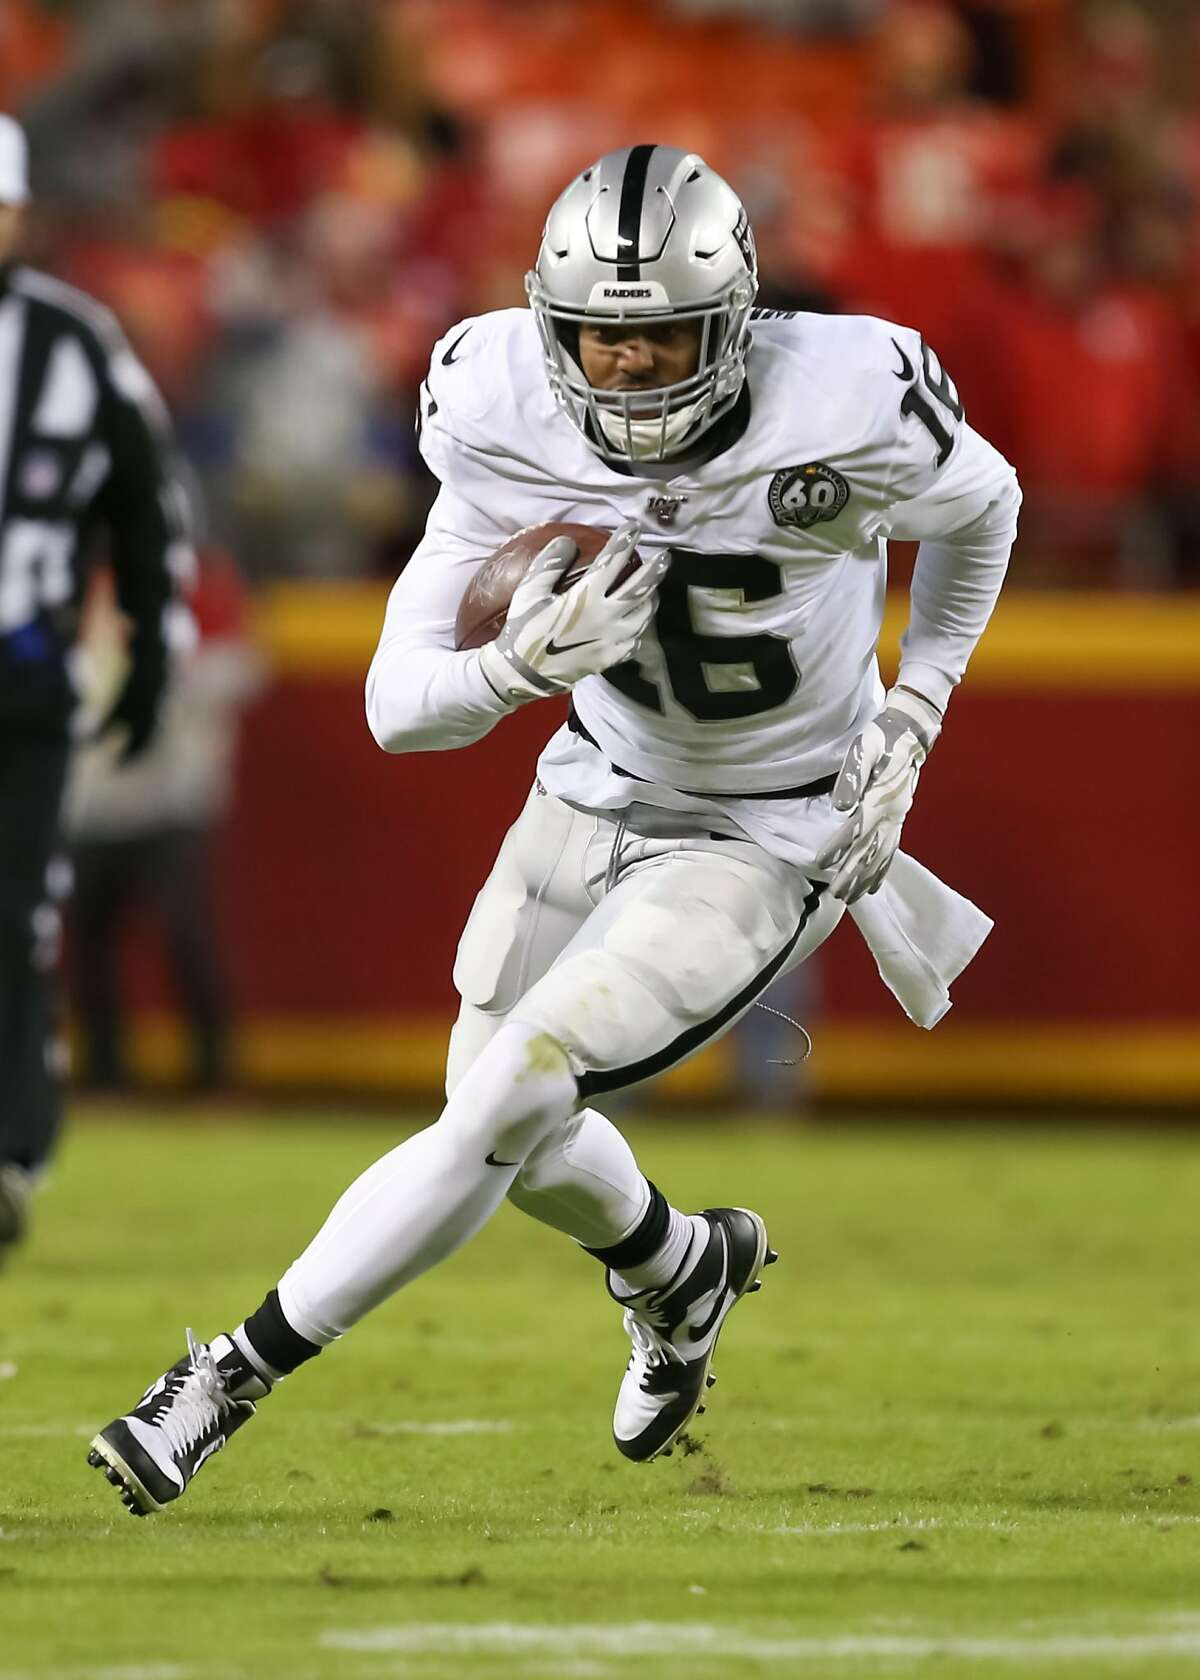 KANSAS CITY, MO - DECEMBER 01: Oakland Raiders wide receiver Tyrell Williams (16) runs after the catch in the fourth quarter of an AFC West game between the Oakland Raiders and Kansas City Chiefs on December 1, 2019 at Arrowhead Stadium in Kansas City, MO. (Photo by Scott Winters/Icon Sportswire via Getty Images)